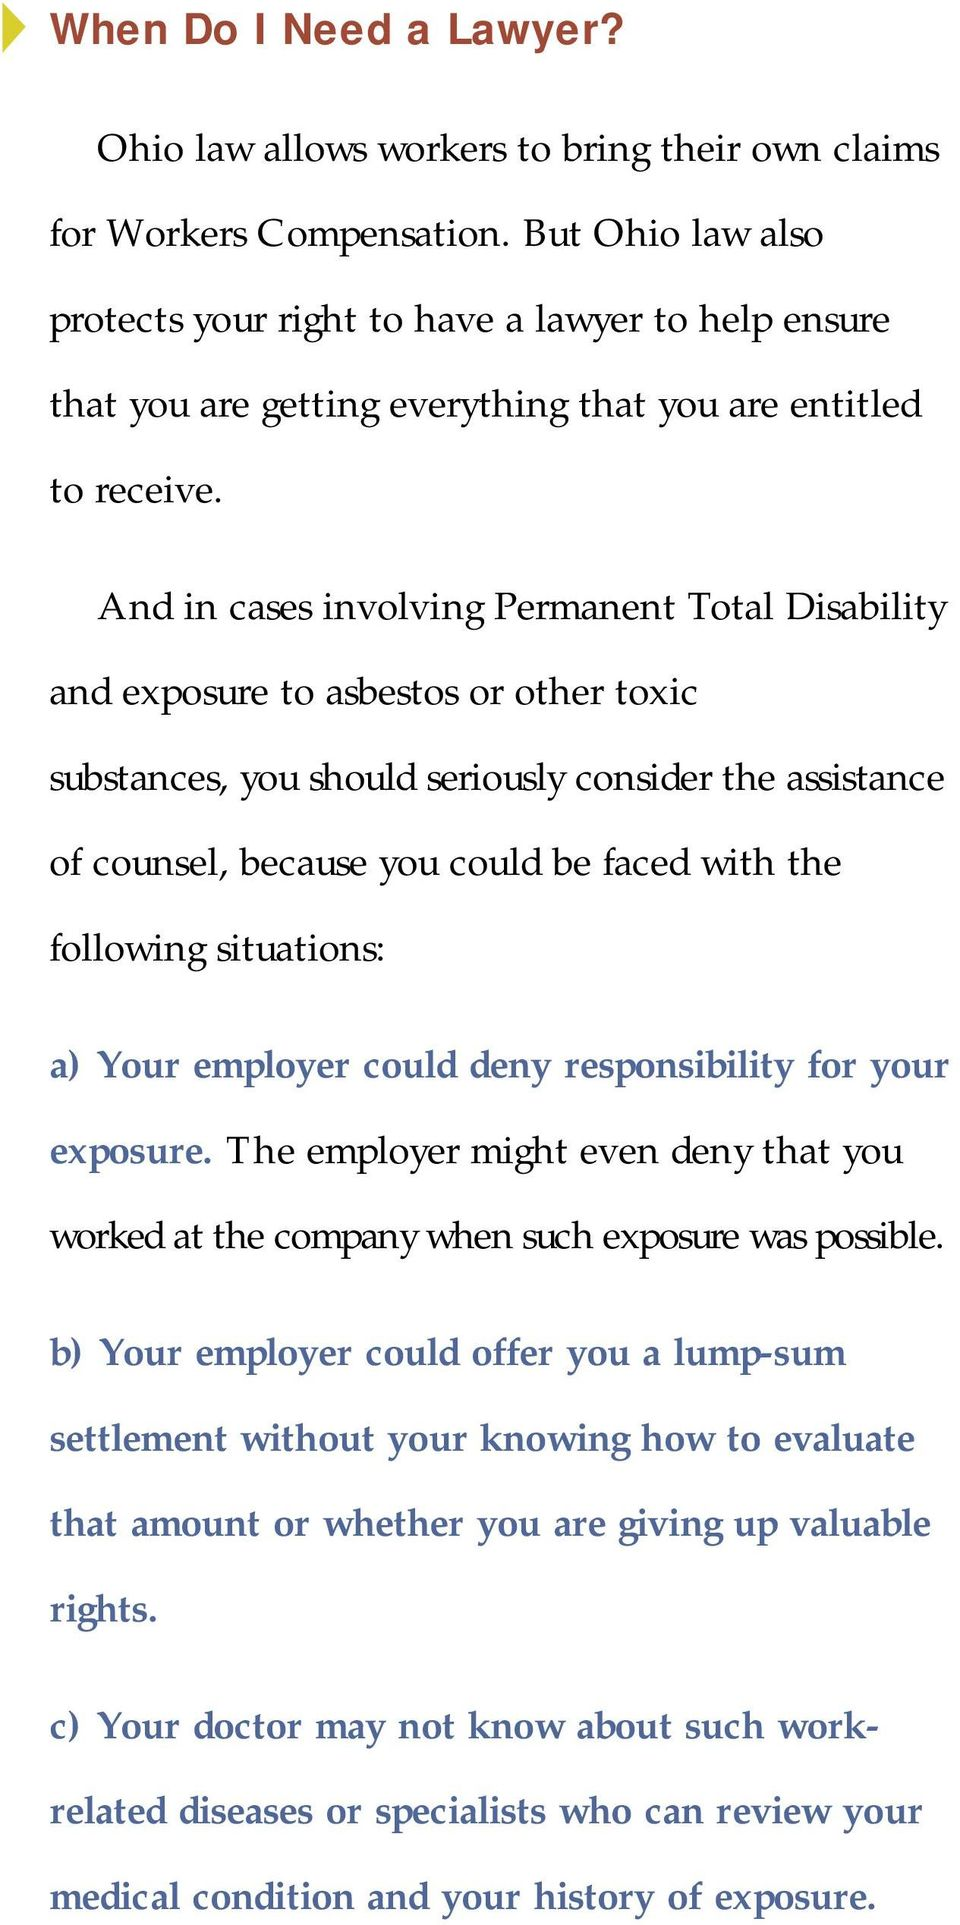 And in cases involving Permanent Total Disability and exposure to asbestos or other toxic substances, you should seriously consider the assistance of counsel, because you could be faced with the